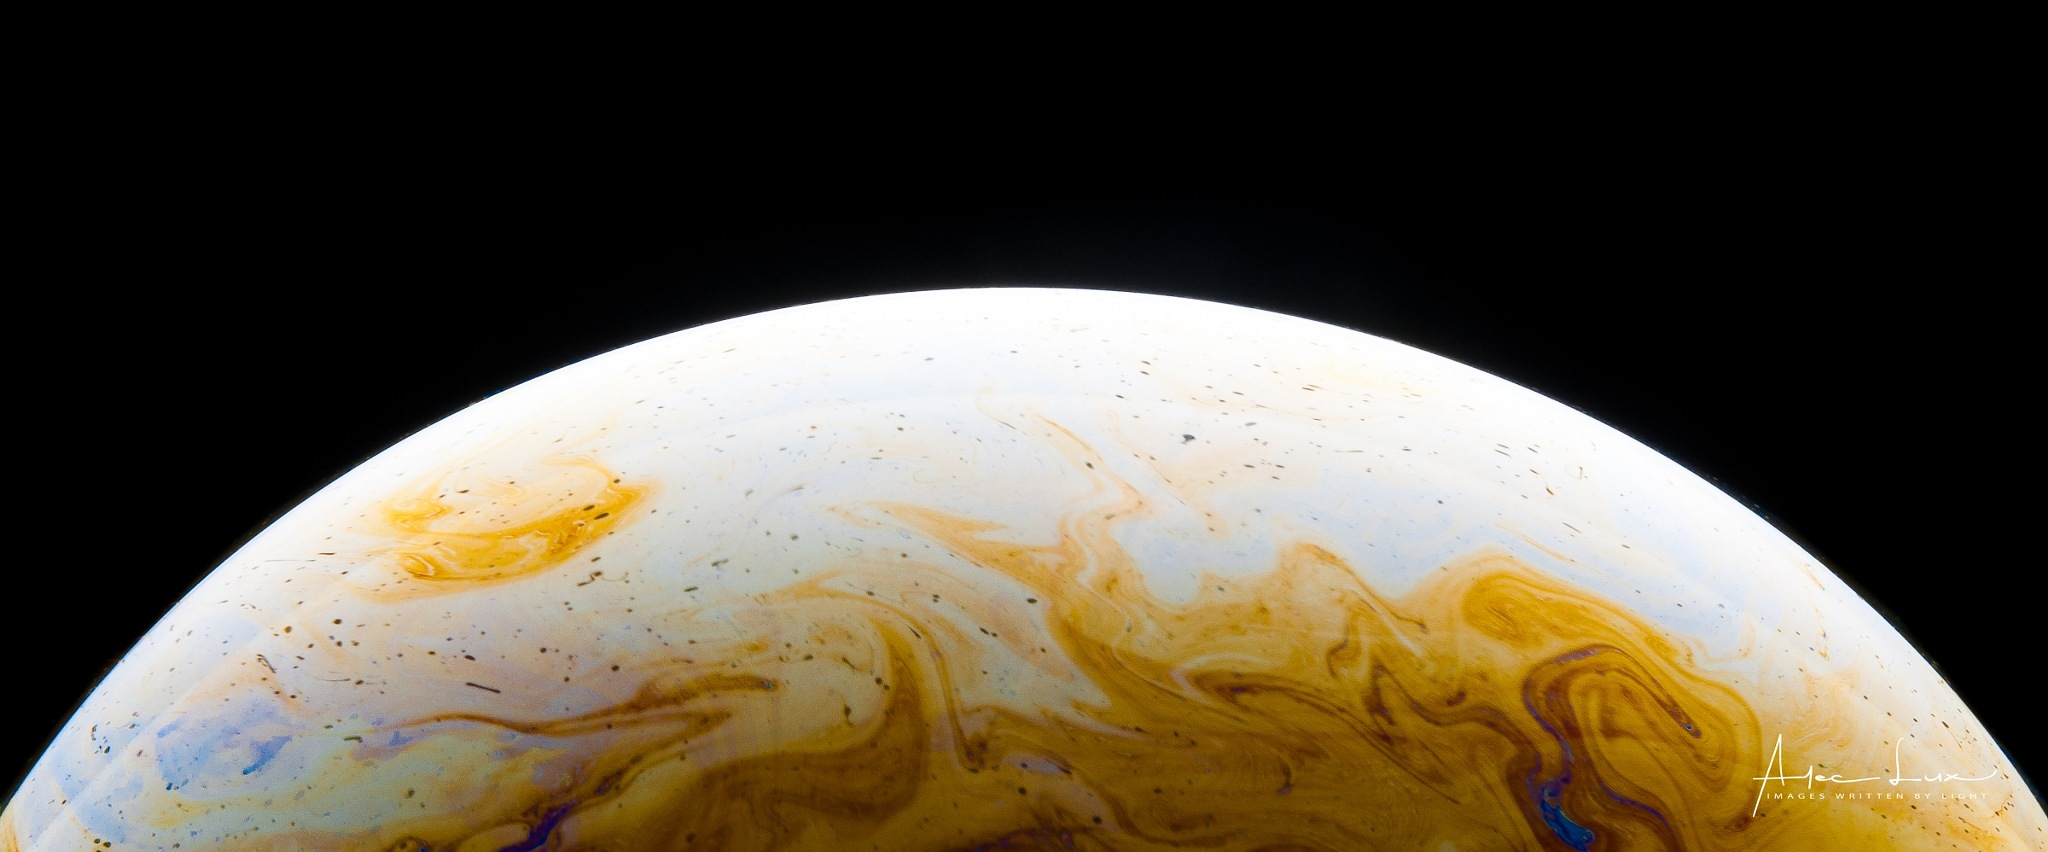 Exoplanet - WASP-32 b by Alec Lux